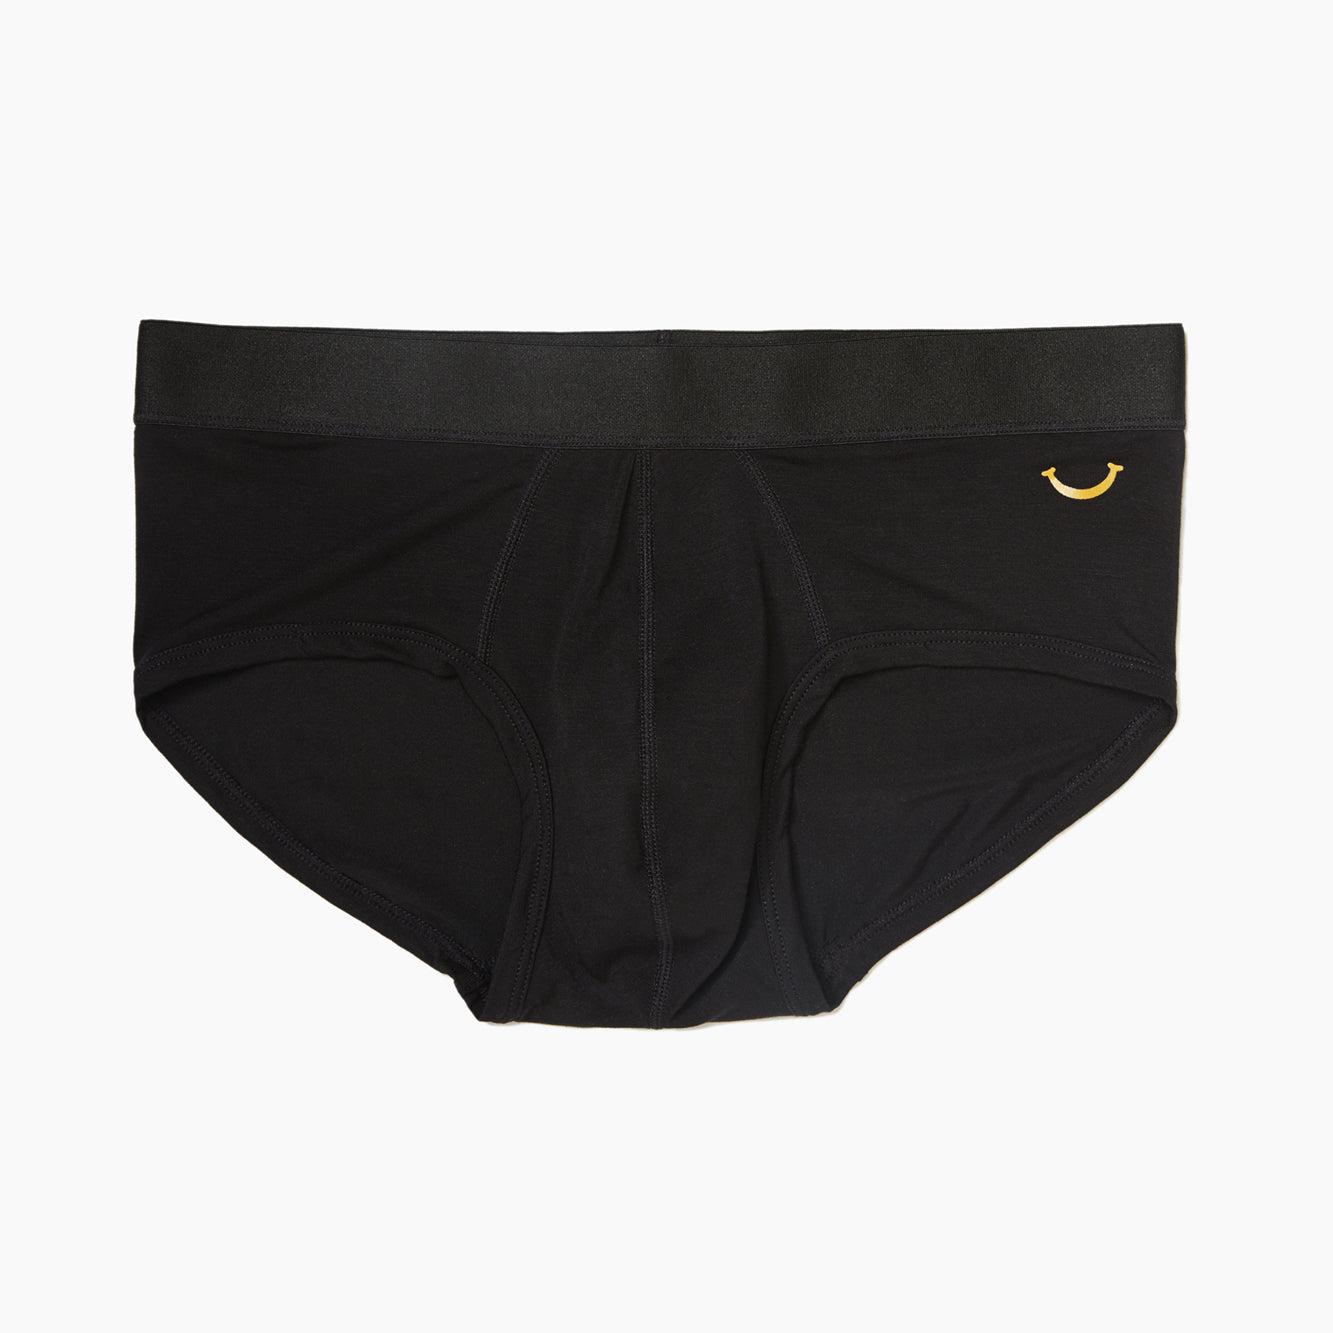 Men's Brief - Feel Good Undies